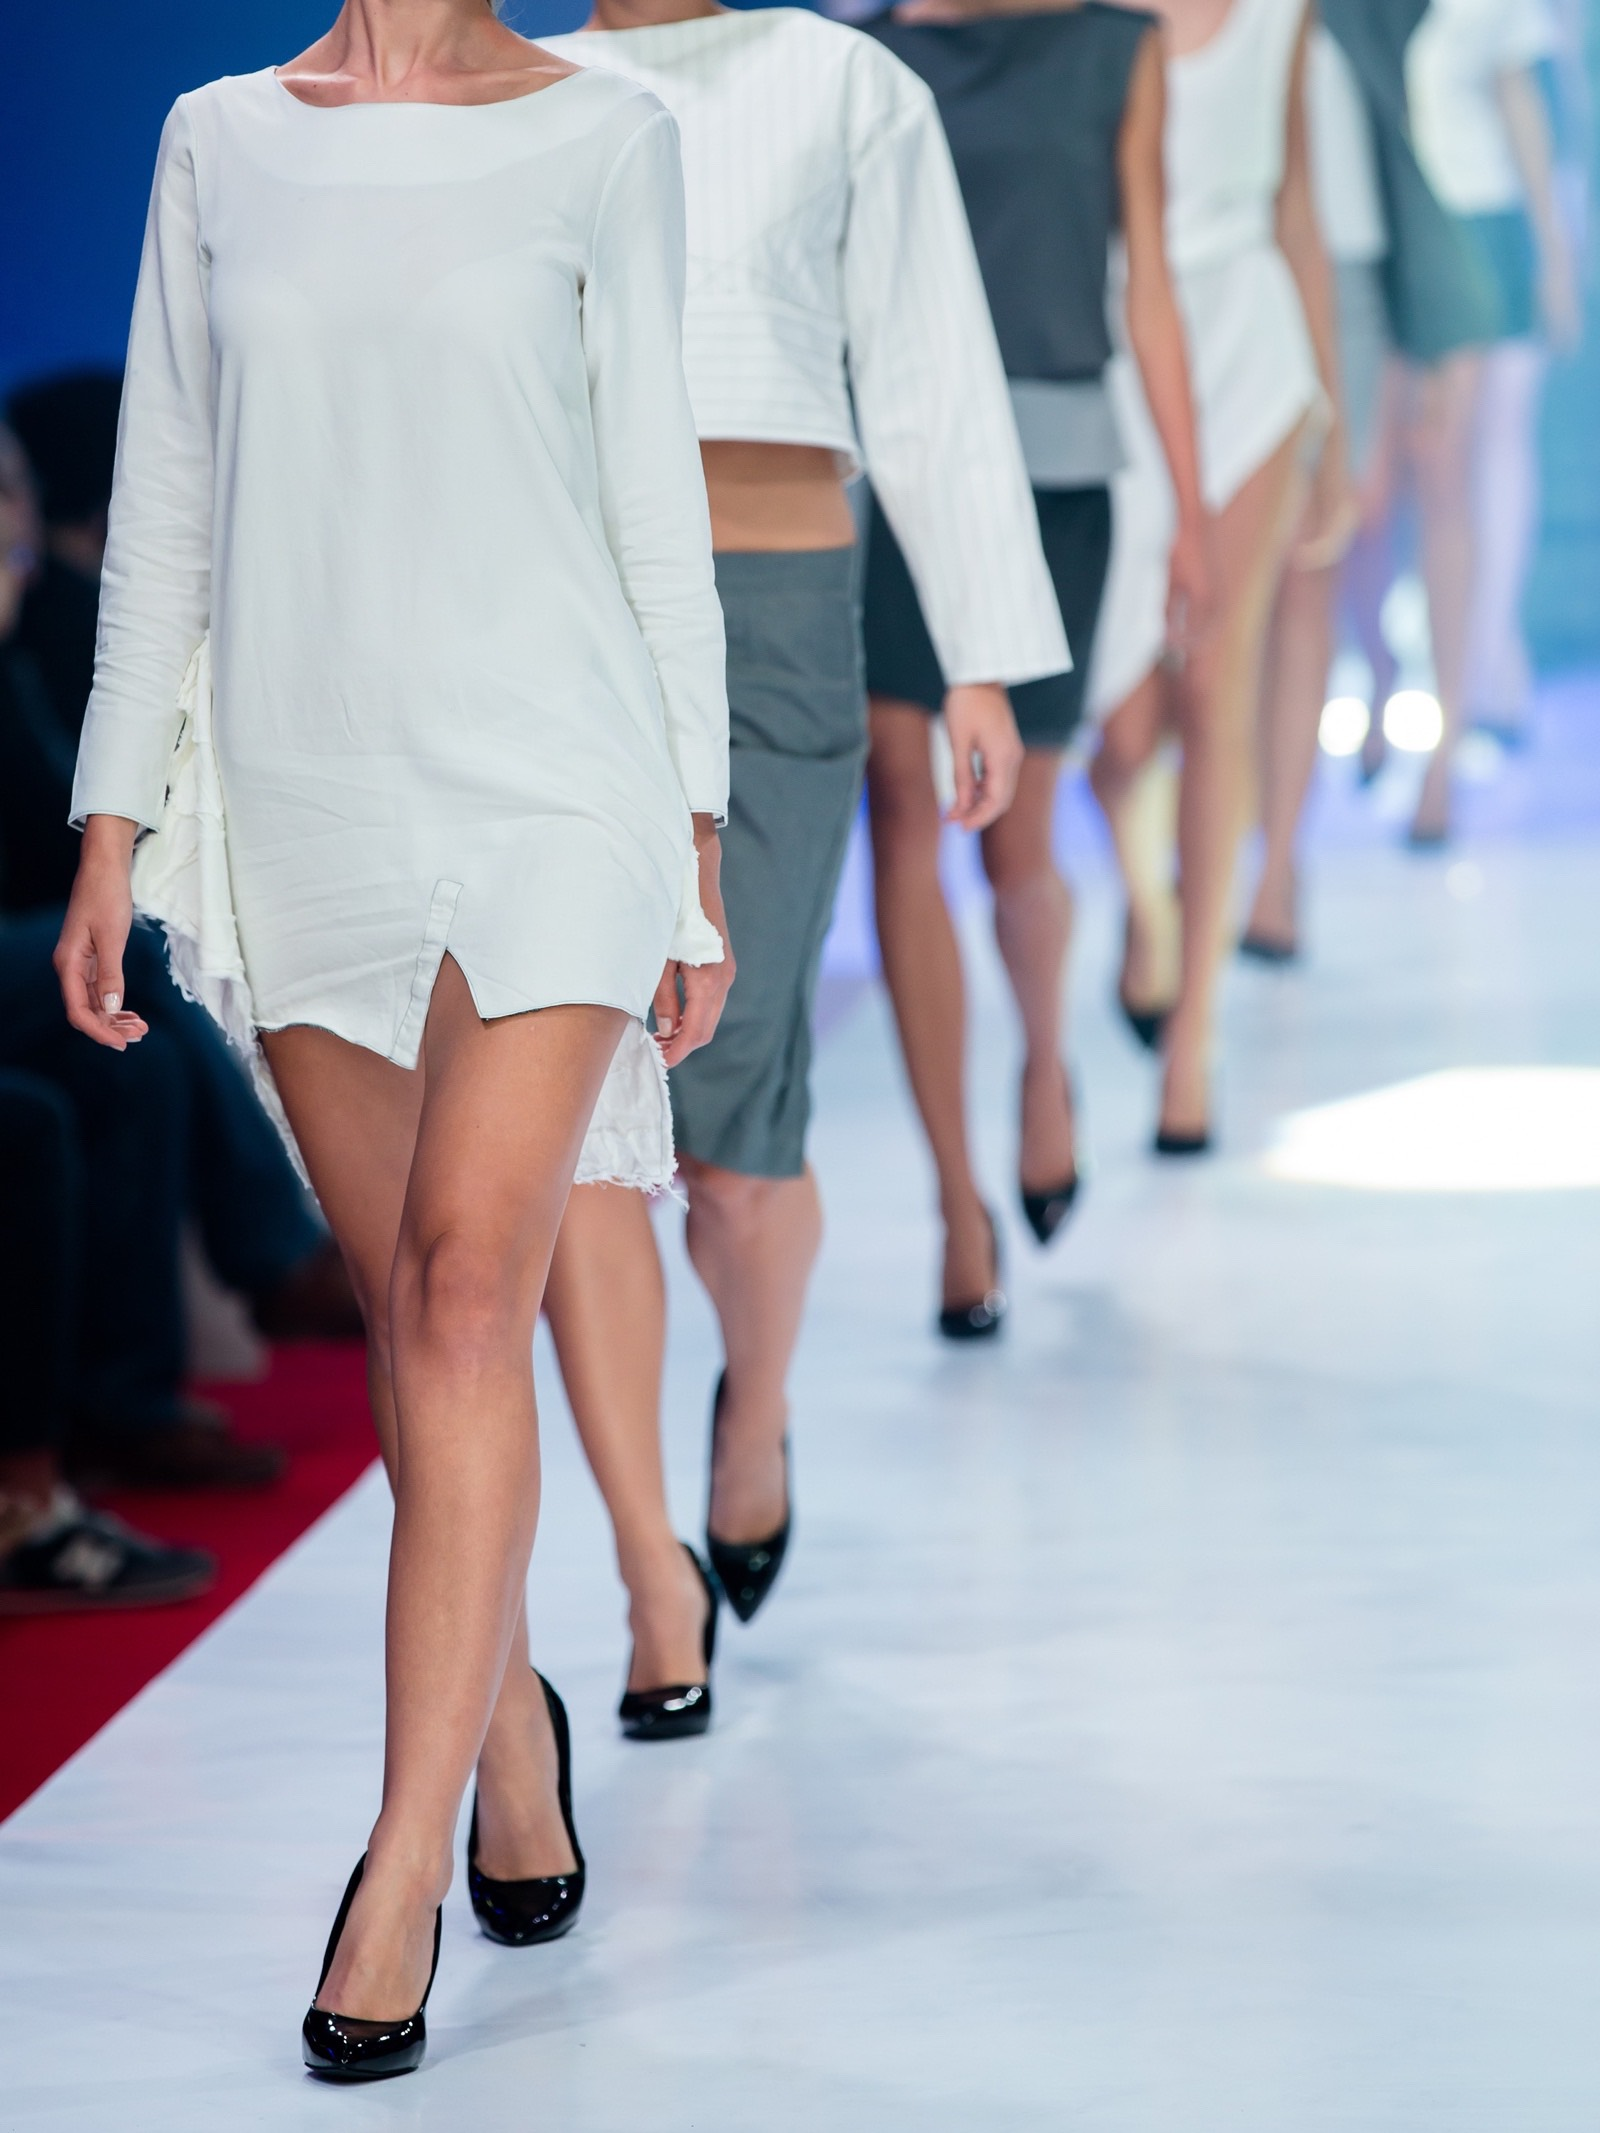 fashion-runway.jpg